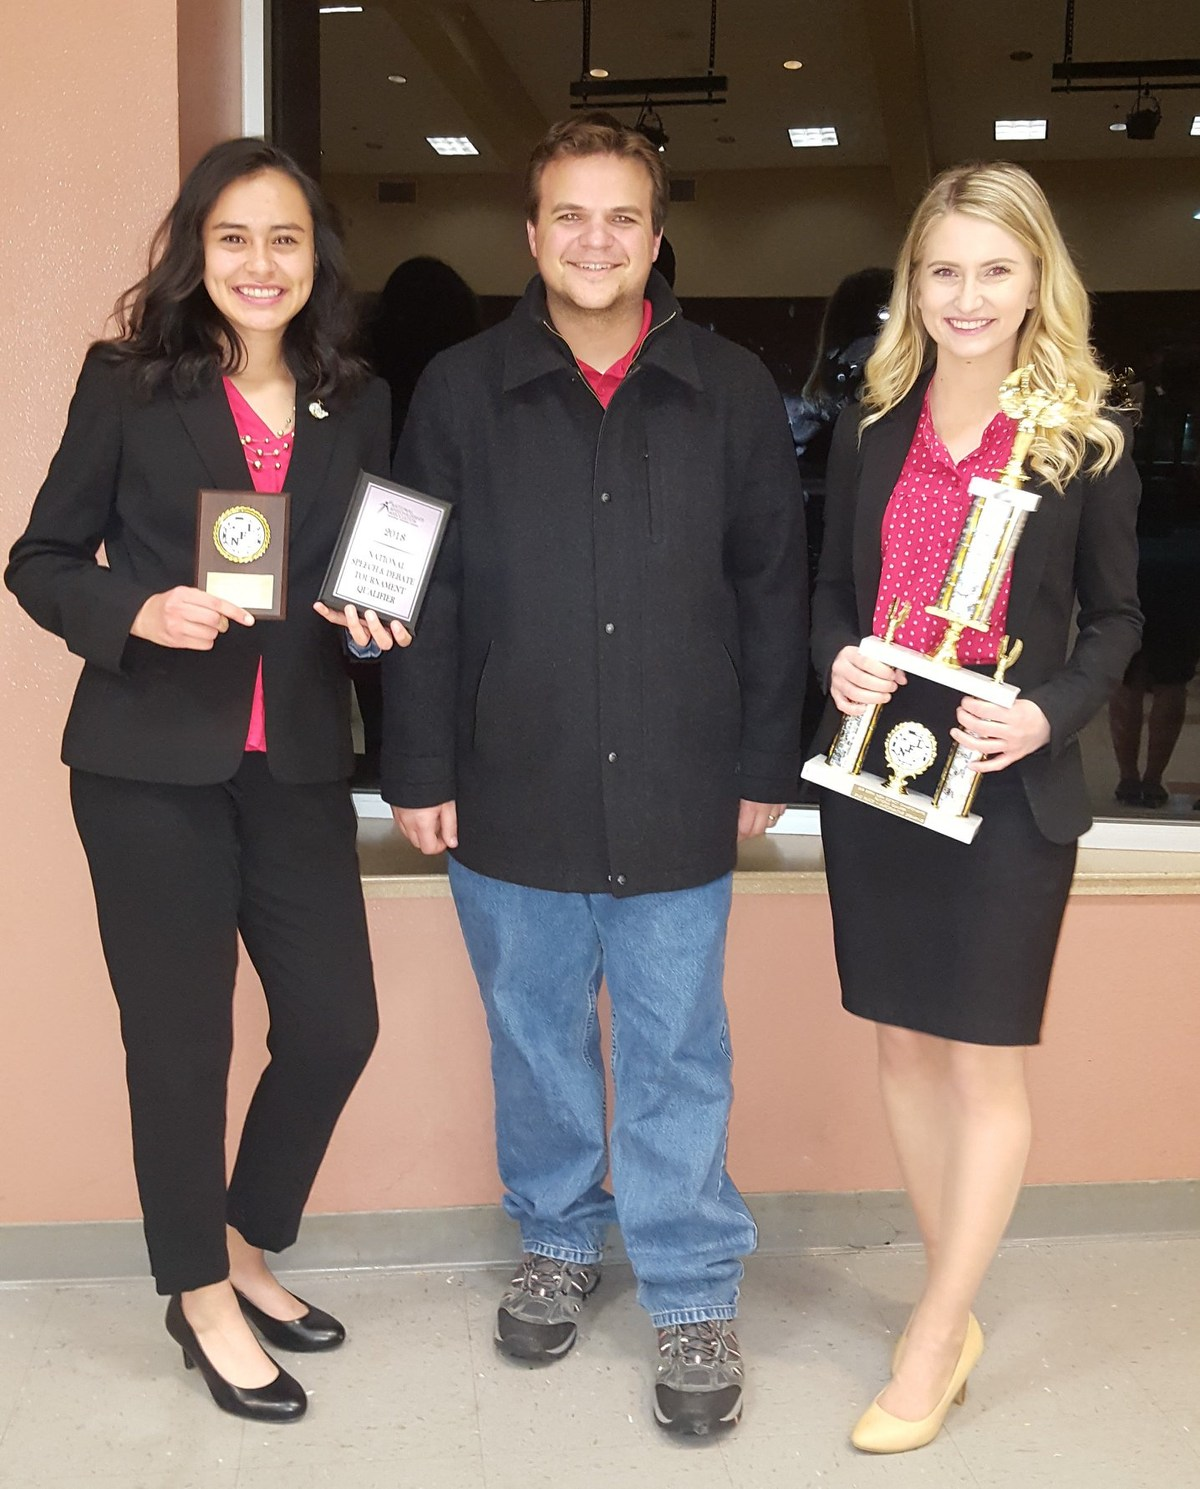 Andrea Jimenez and Caitlin Herring pictured with coach Bill Turner